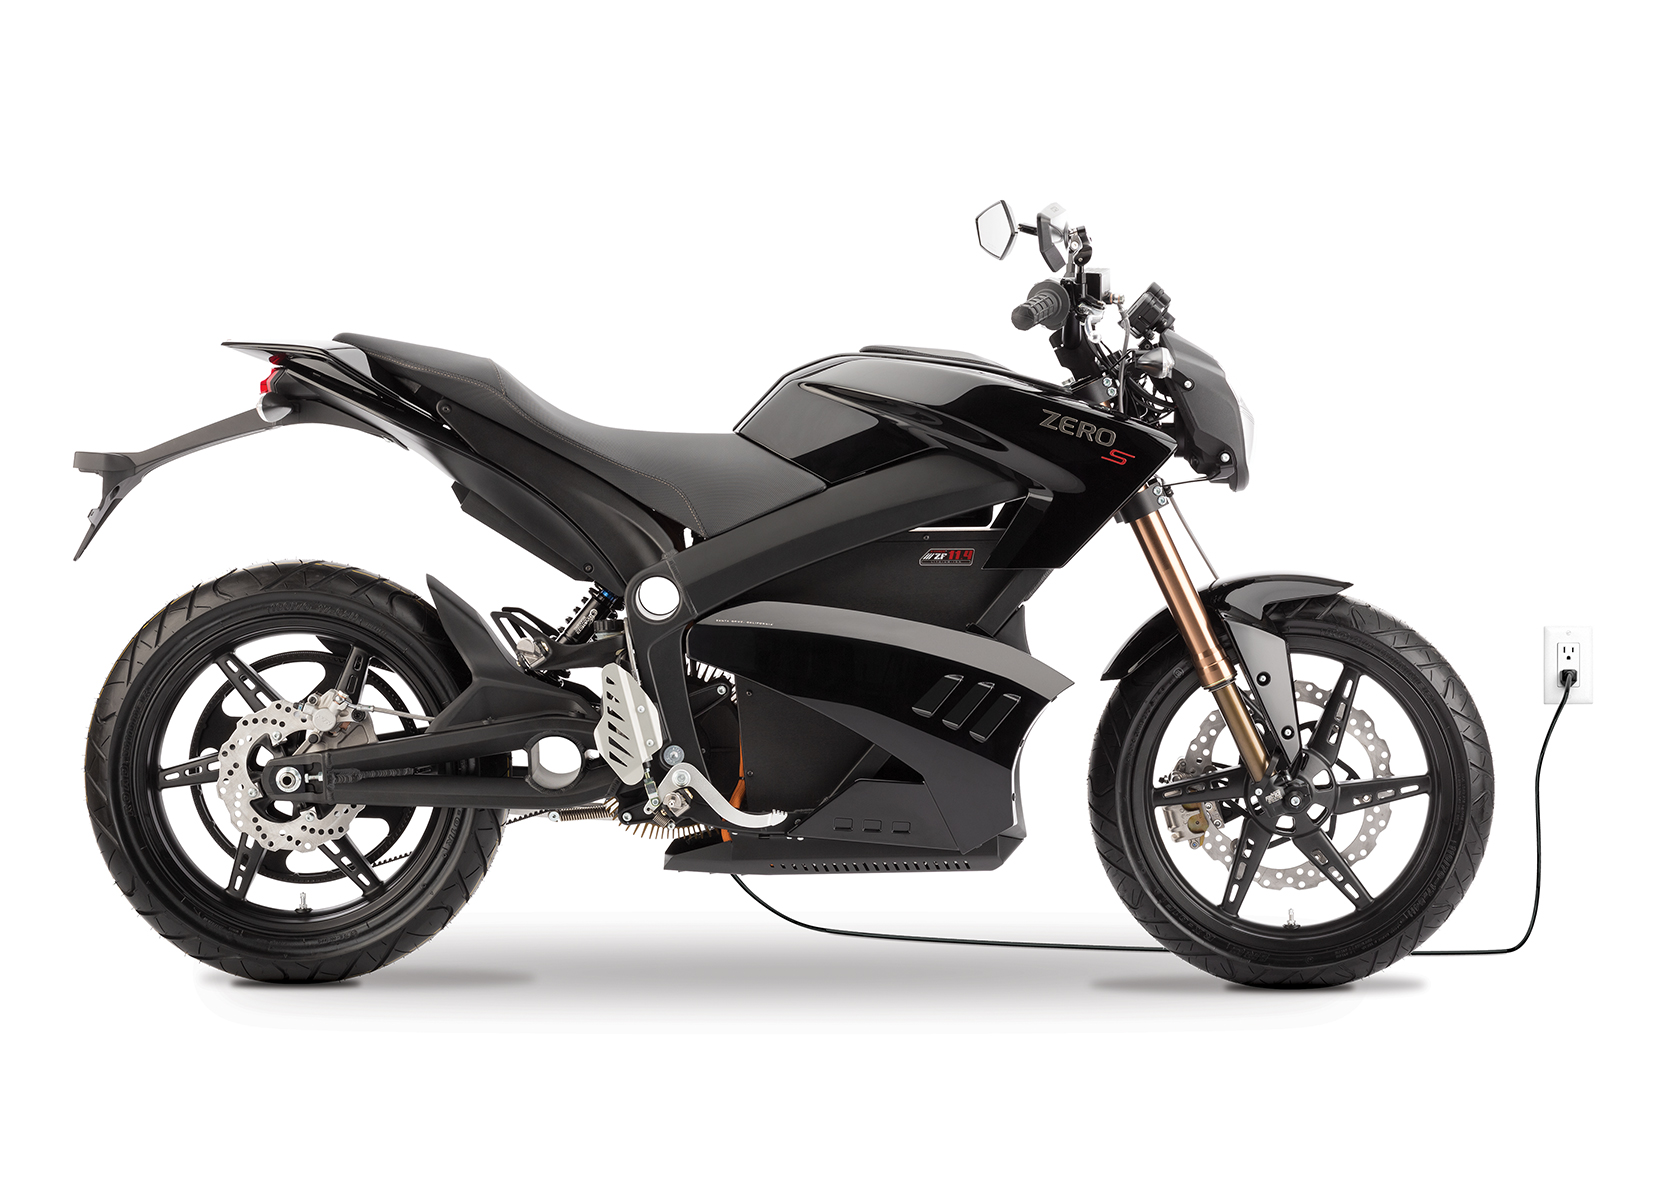 2013 Zero S Electric Motorcycle: Black Profile Right, Plugged In, White Background